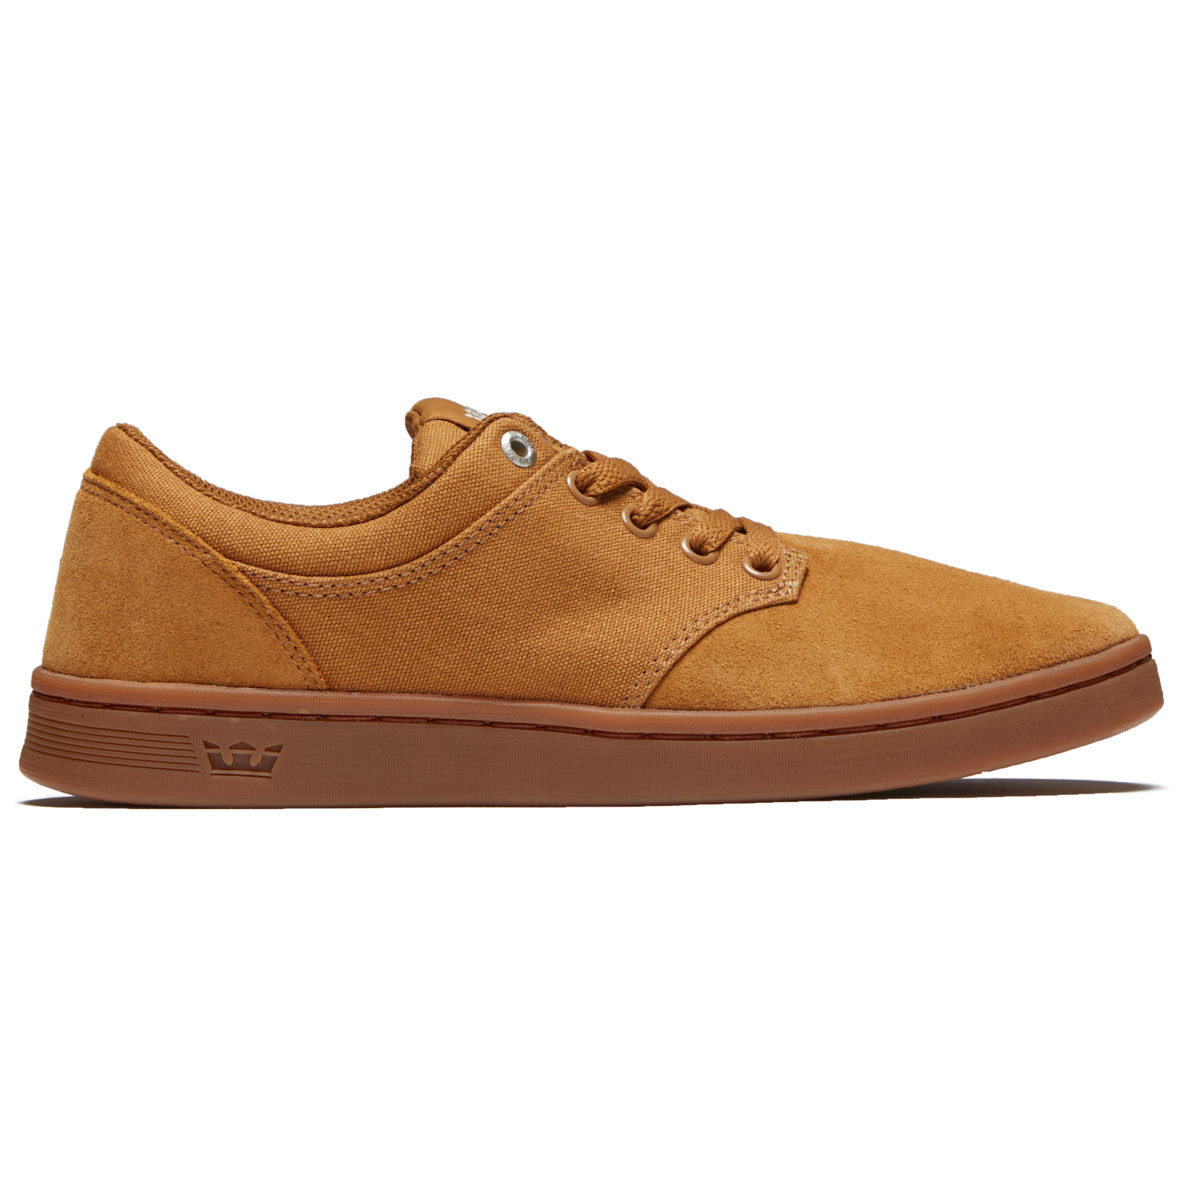 Supra Supra Chino Chino Court Shoes wcYqYrX6